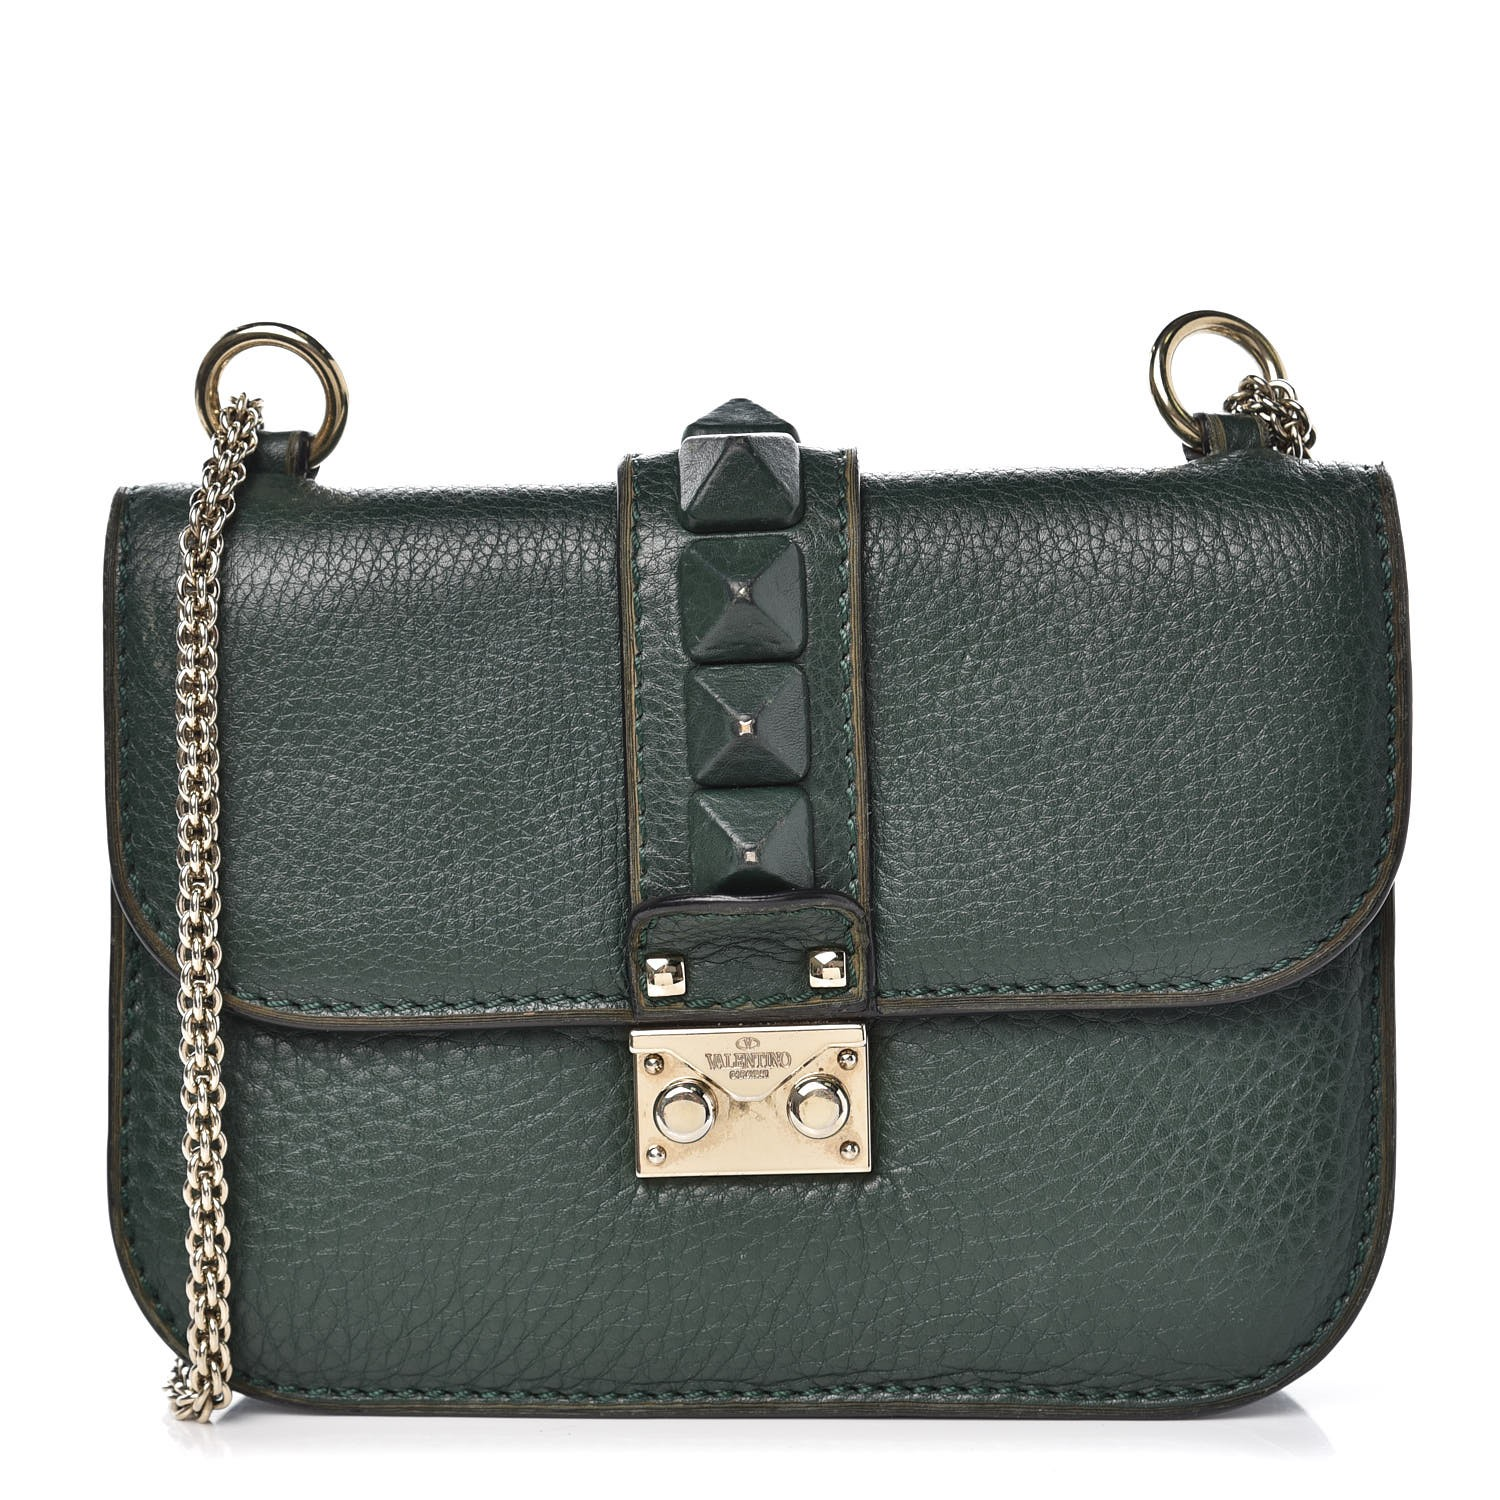 7d0c0ac0e VALENTINO Pebbled Calfskin Small Glam Lock Rockstud Flap Green 341953